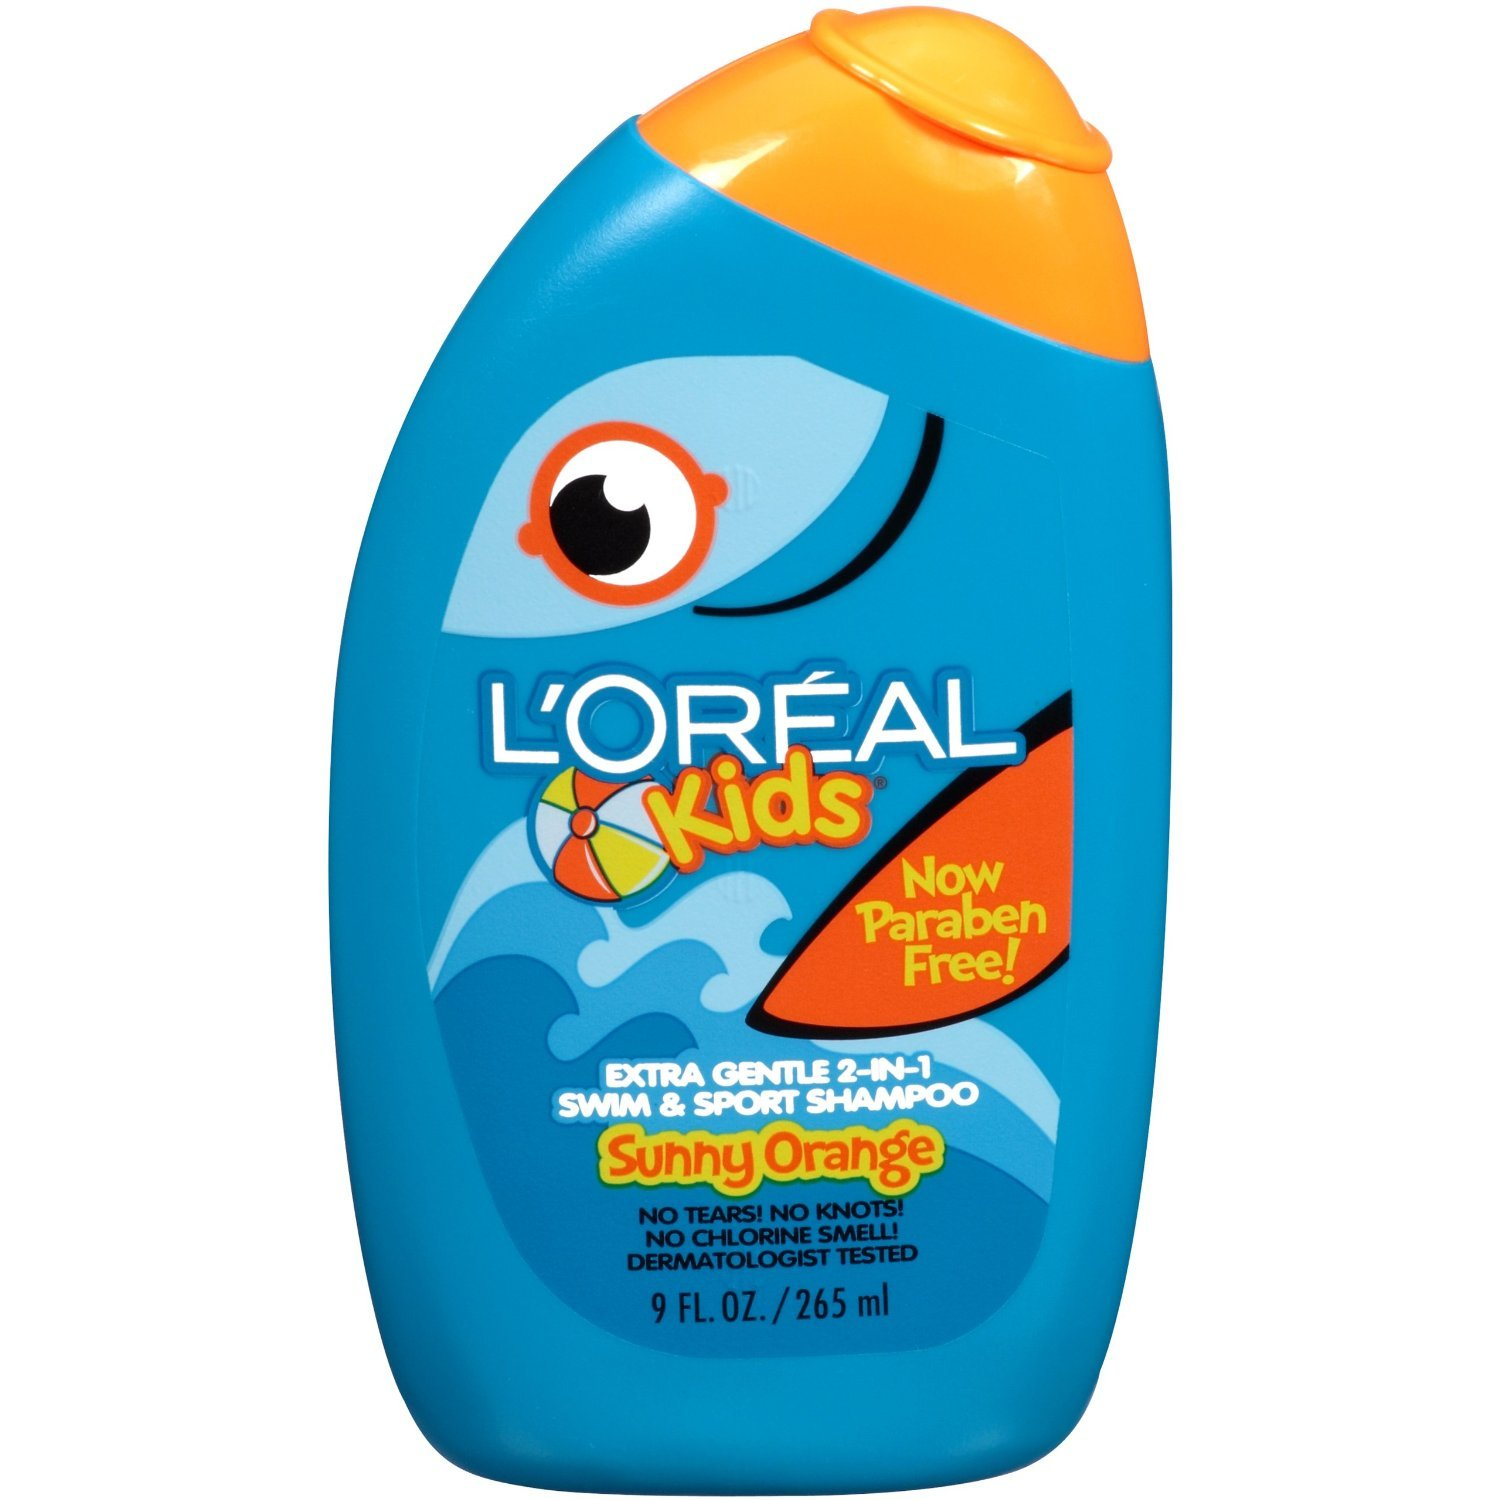 L'Oreal Kids Extra Gentle 2-in-1 Swim & Sport Shampoo, Sunny Orange, 9 Oz (Pack of 3) by L'Oreal Paris